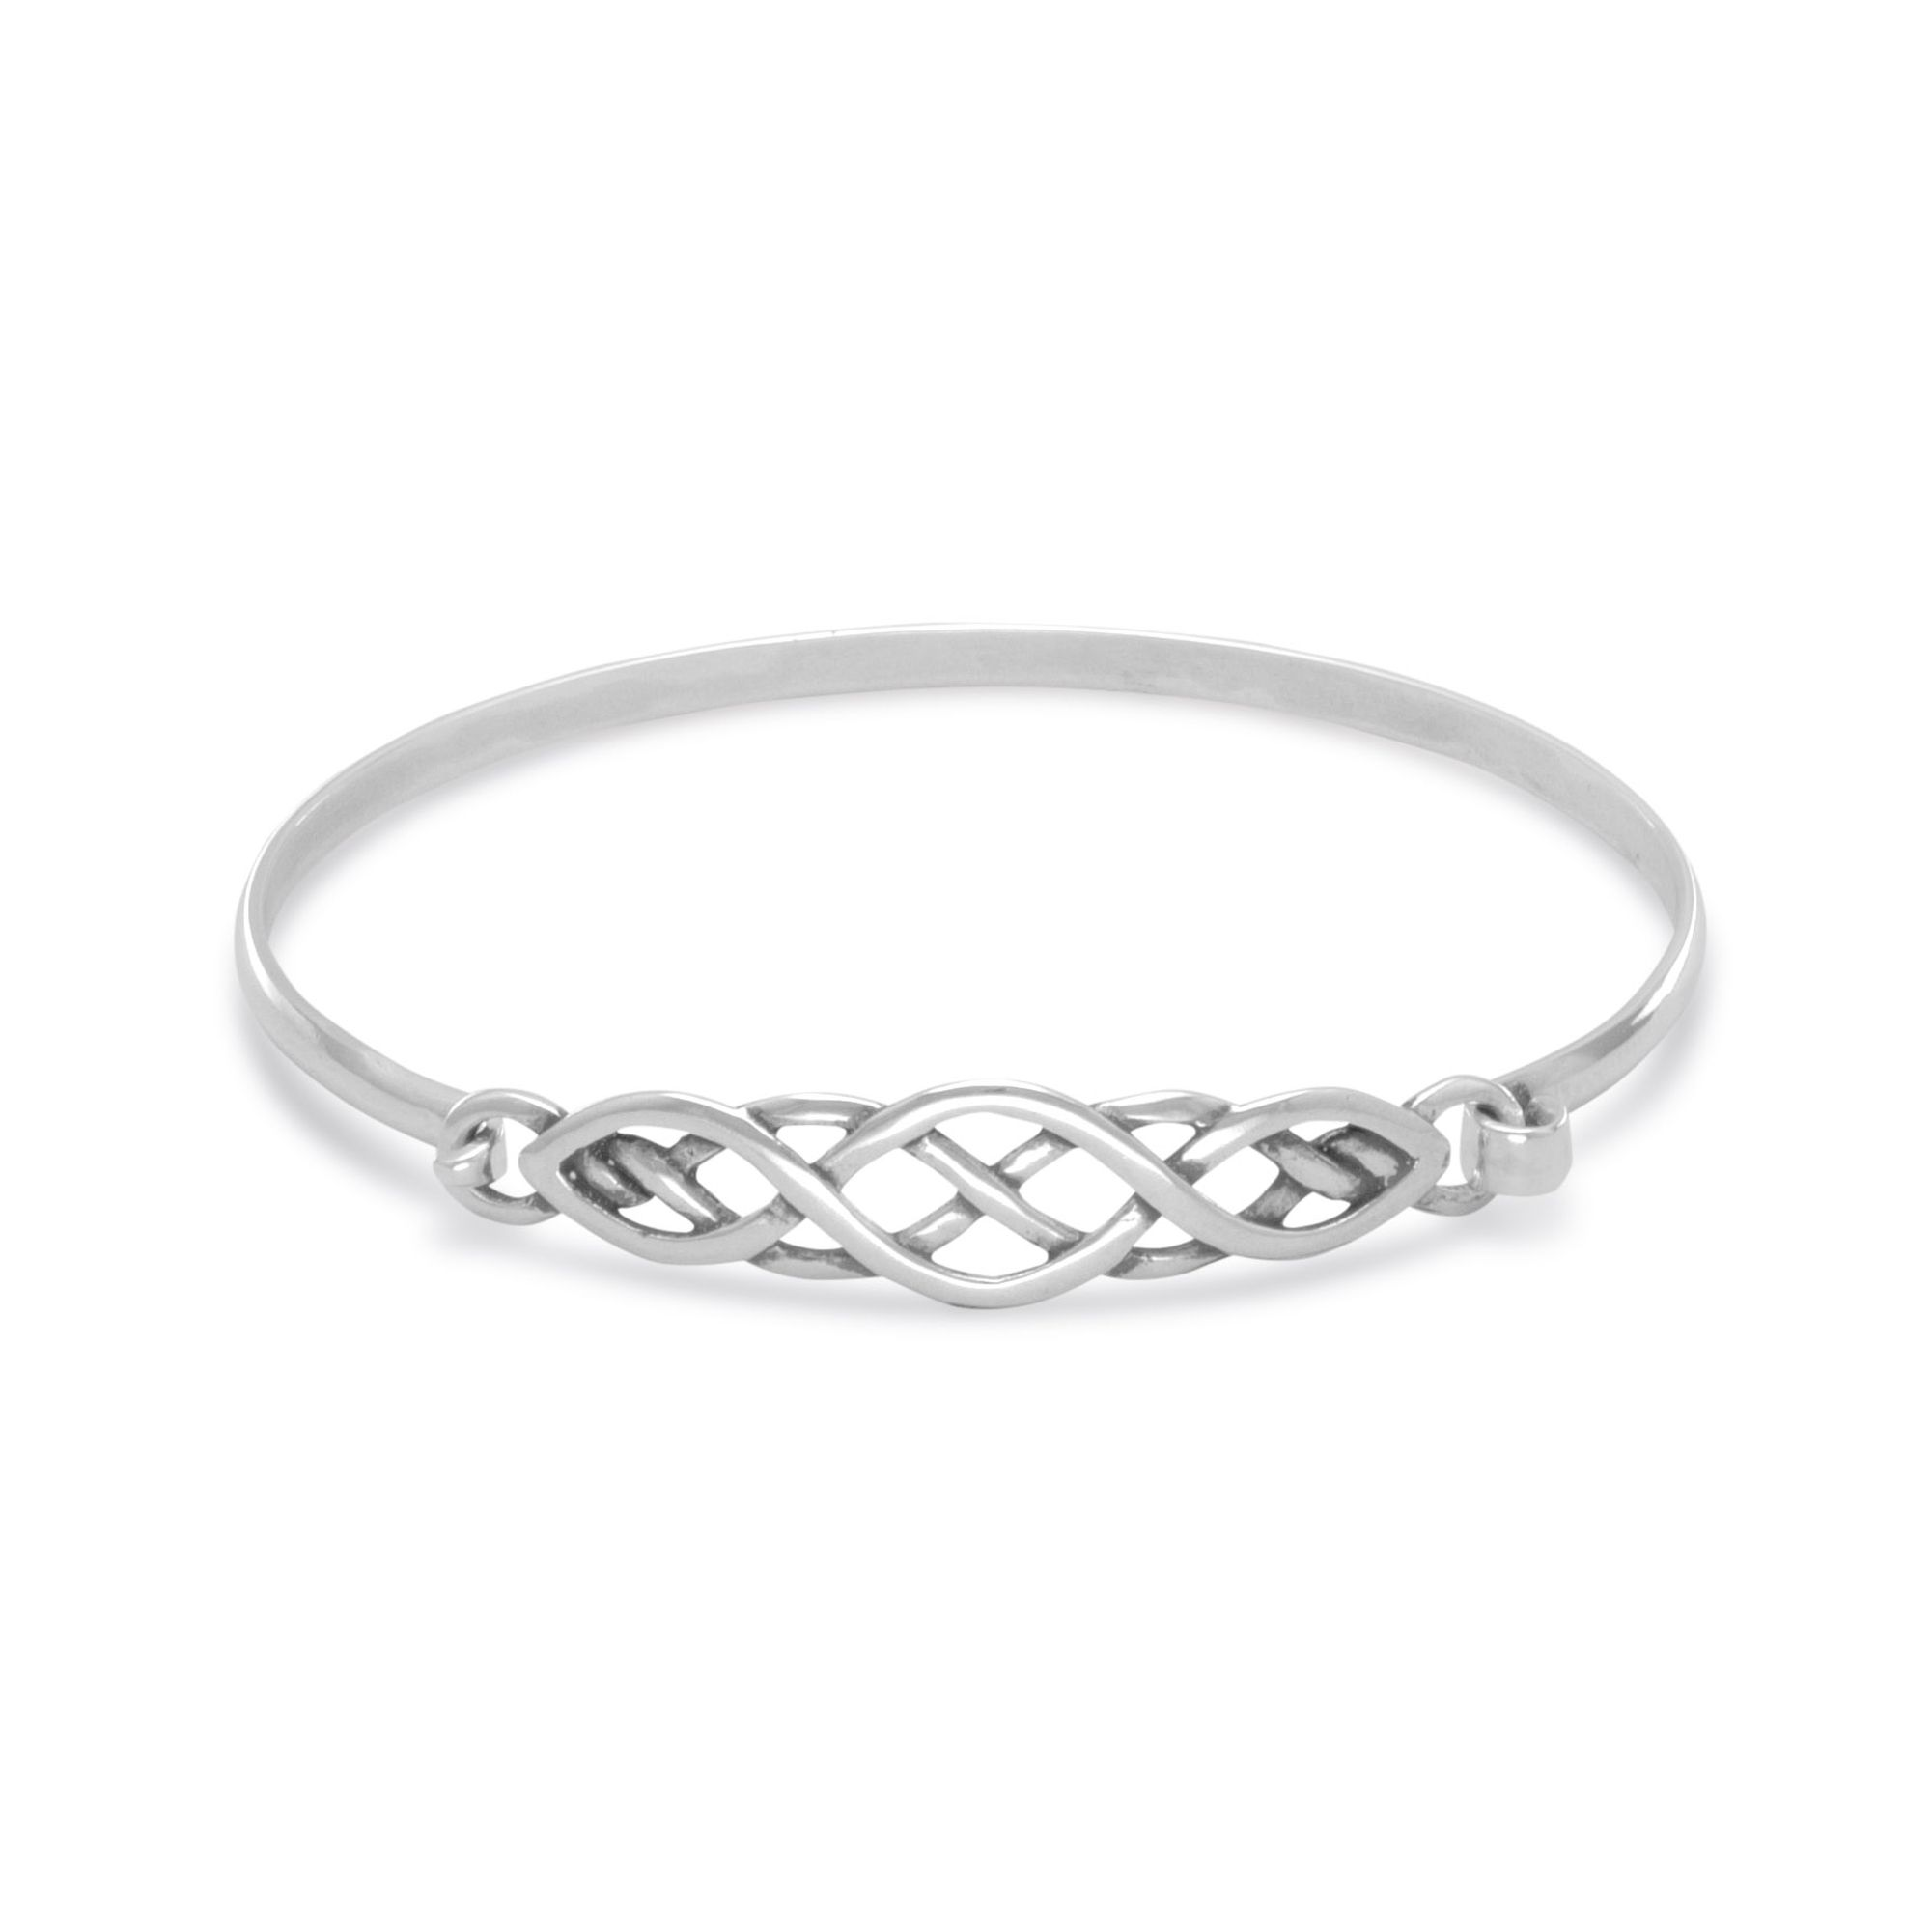 product clef bracelet silver plain products sterling bangle bracelets details bangles melody pb treble aeravida musical